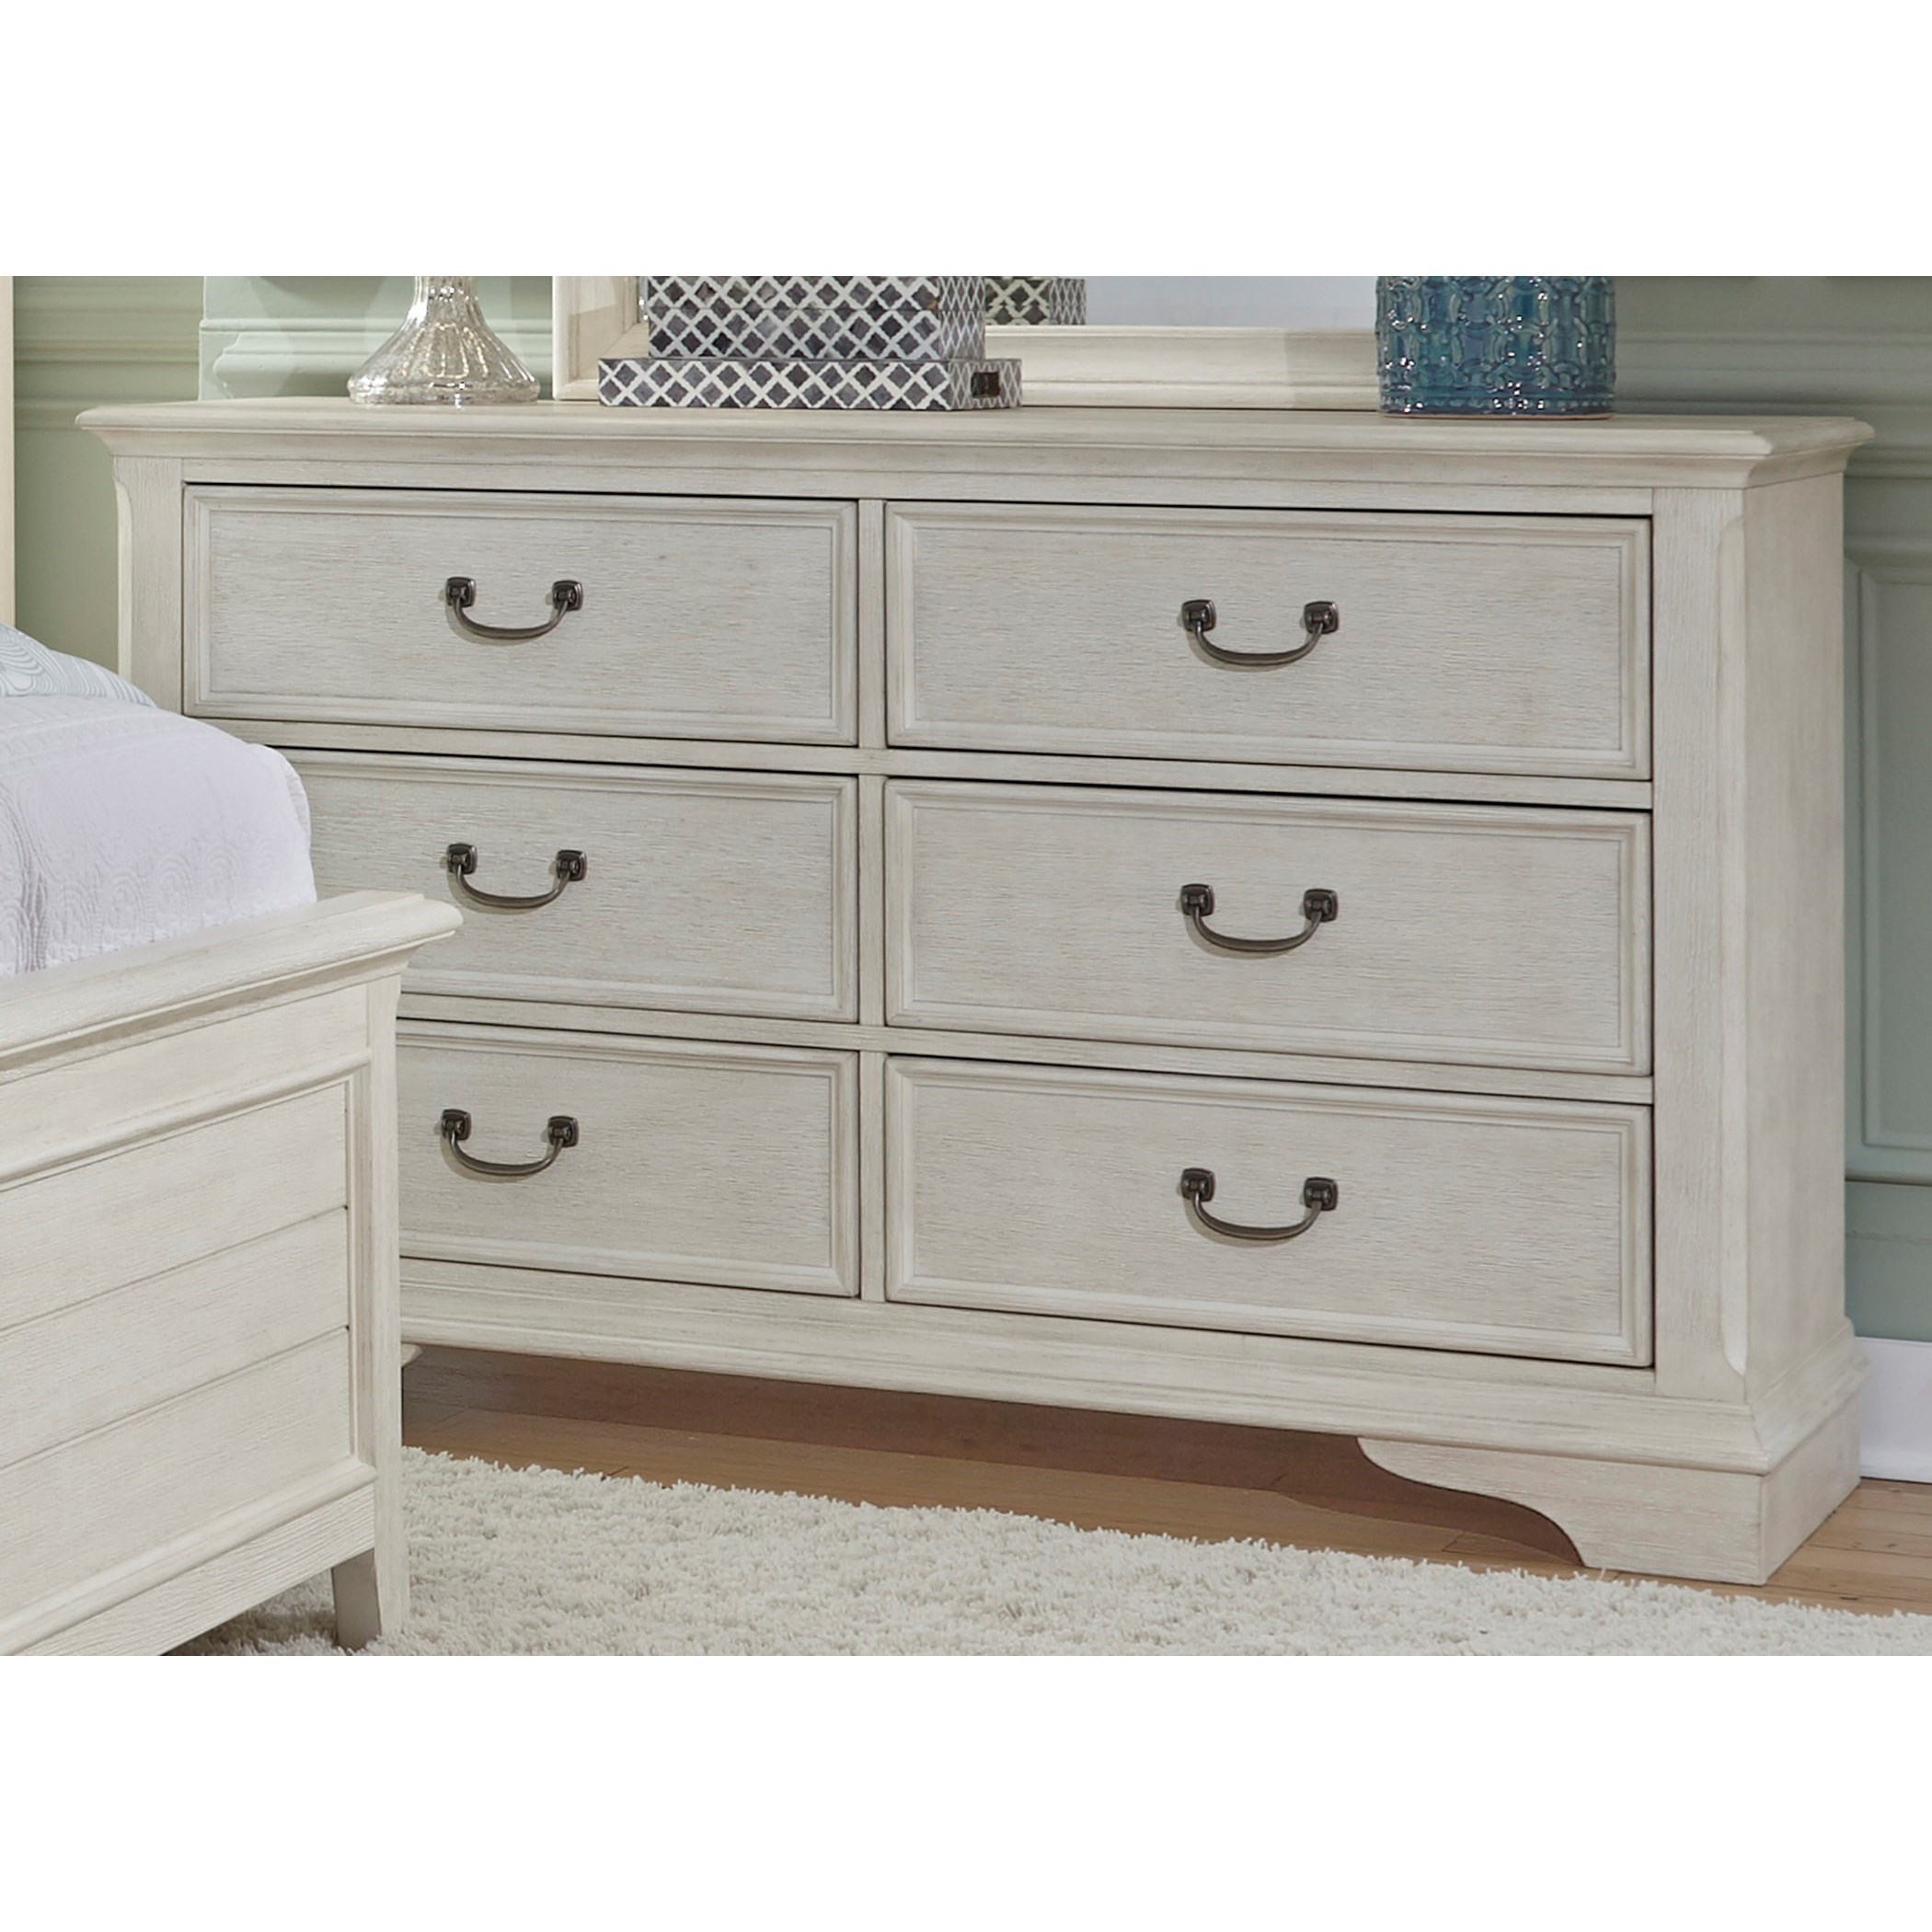 Merveilleux Liberty Furniture Bayside Bedroom Transitional 6 Drawer Dresser With Dust  Proof Drawers